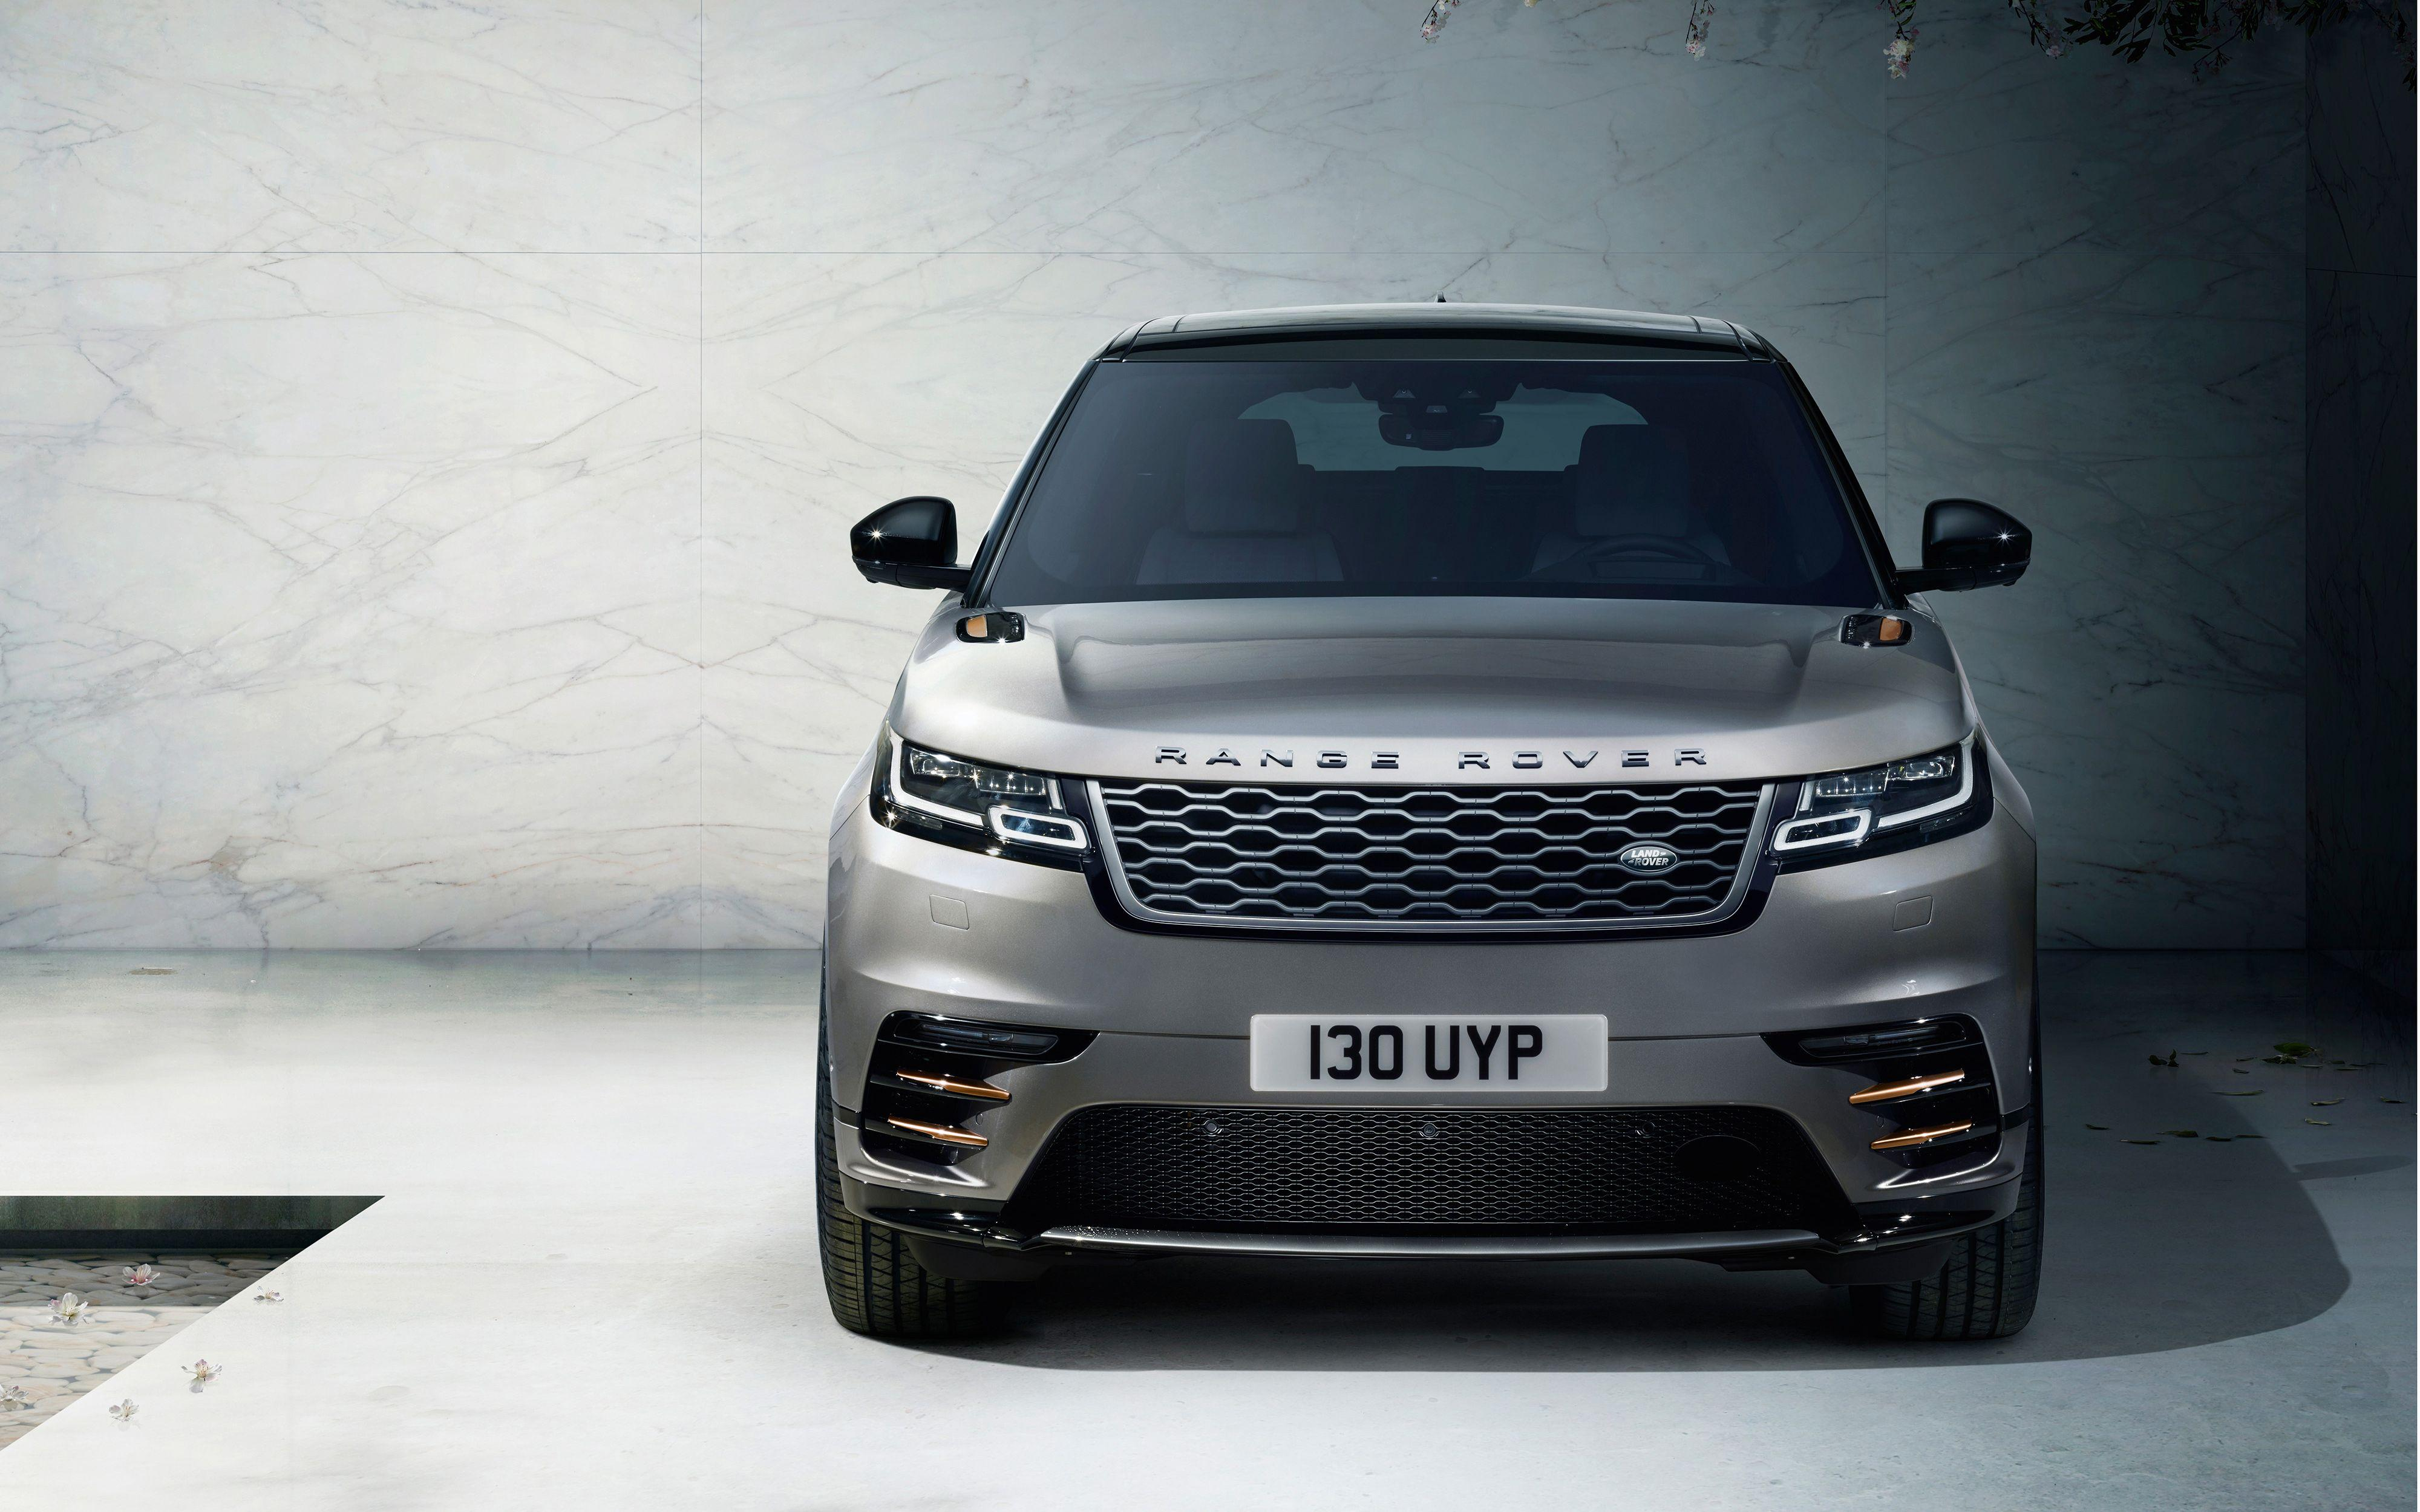 Range Rover Velar Wallpapers Wallpaper Cave